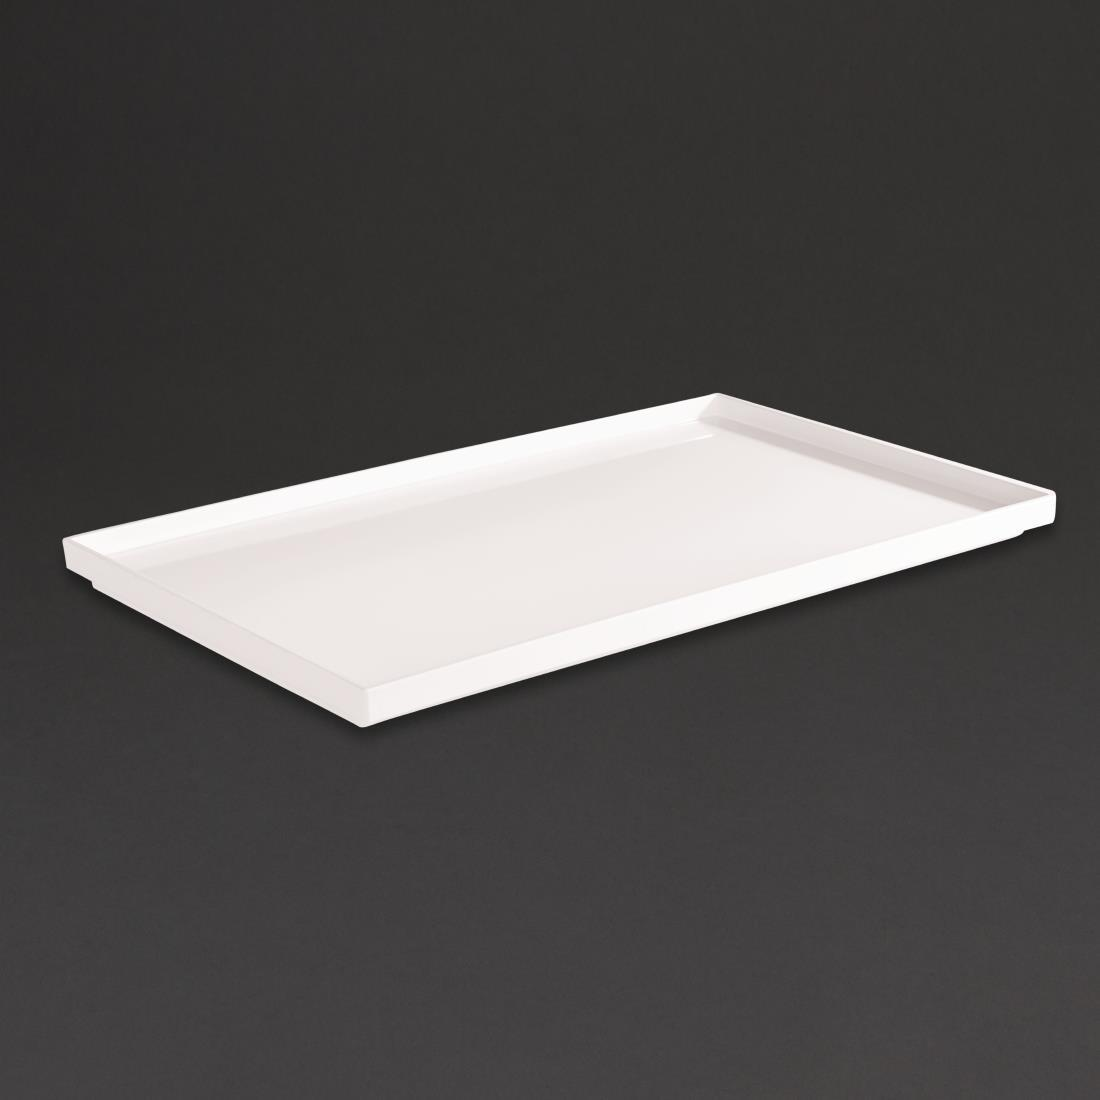 APS Asia+  White Tray GN 1/1 - Each - DT768